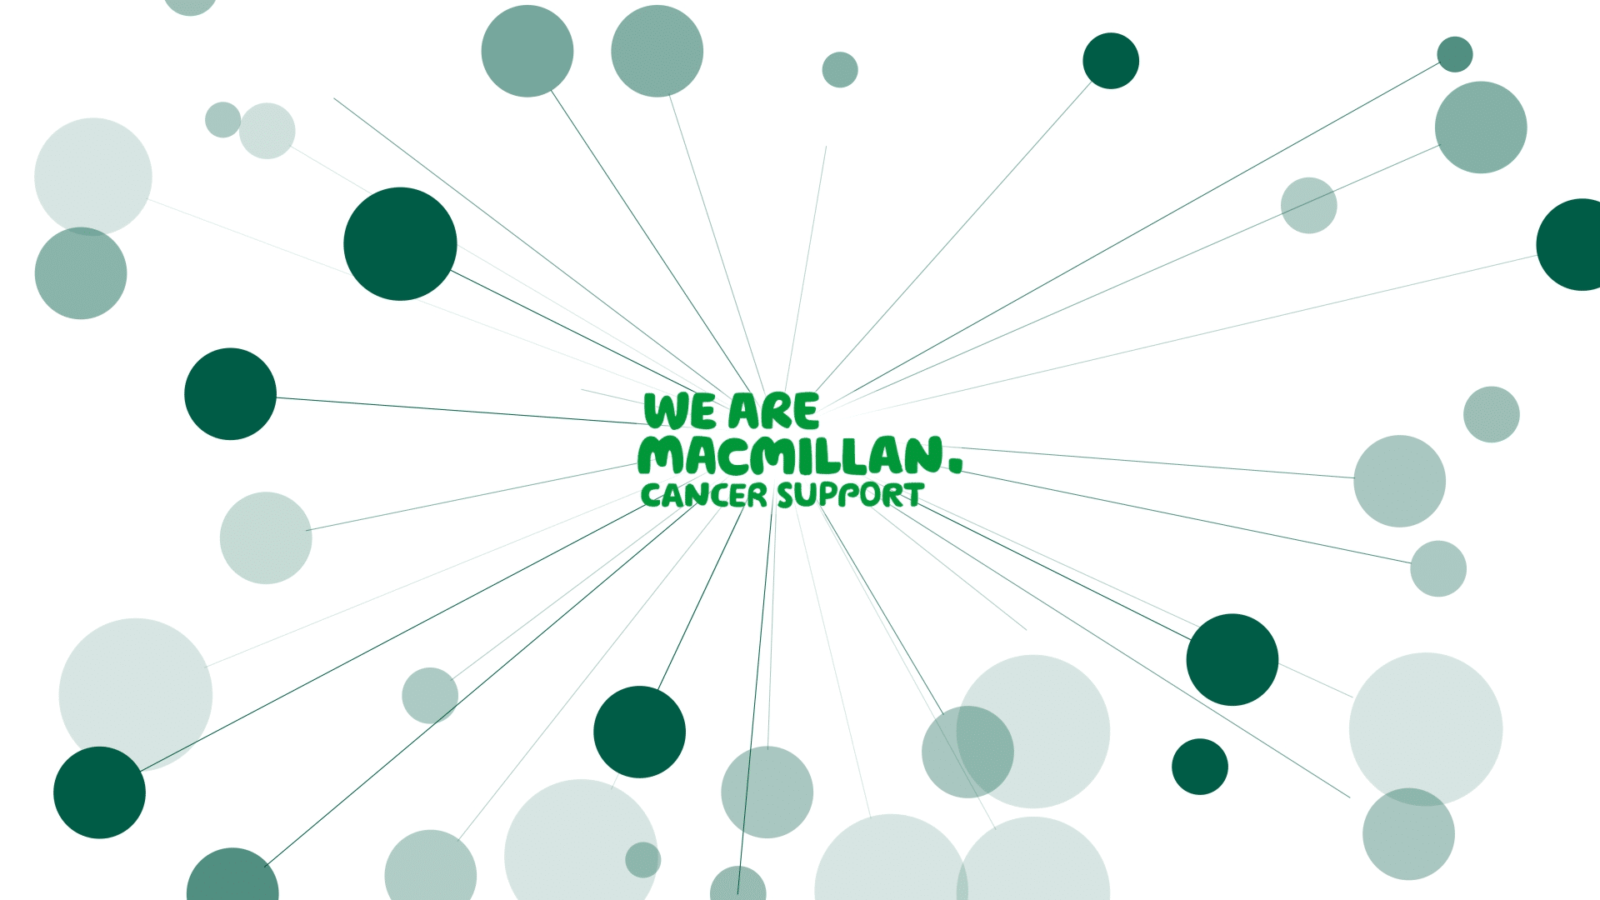 awards entry animated film - macmillan logo surrounded with green circles